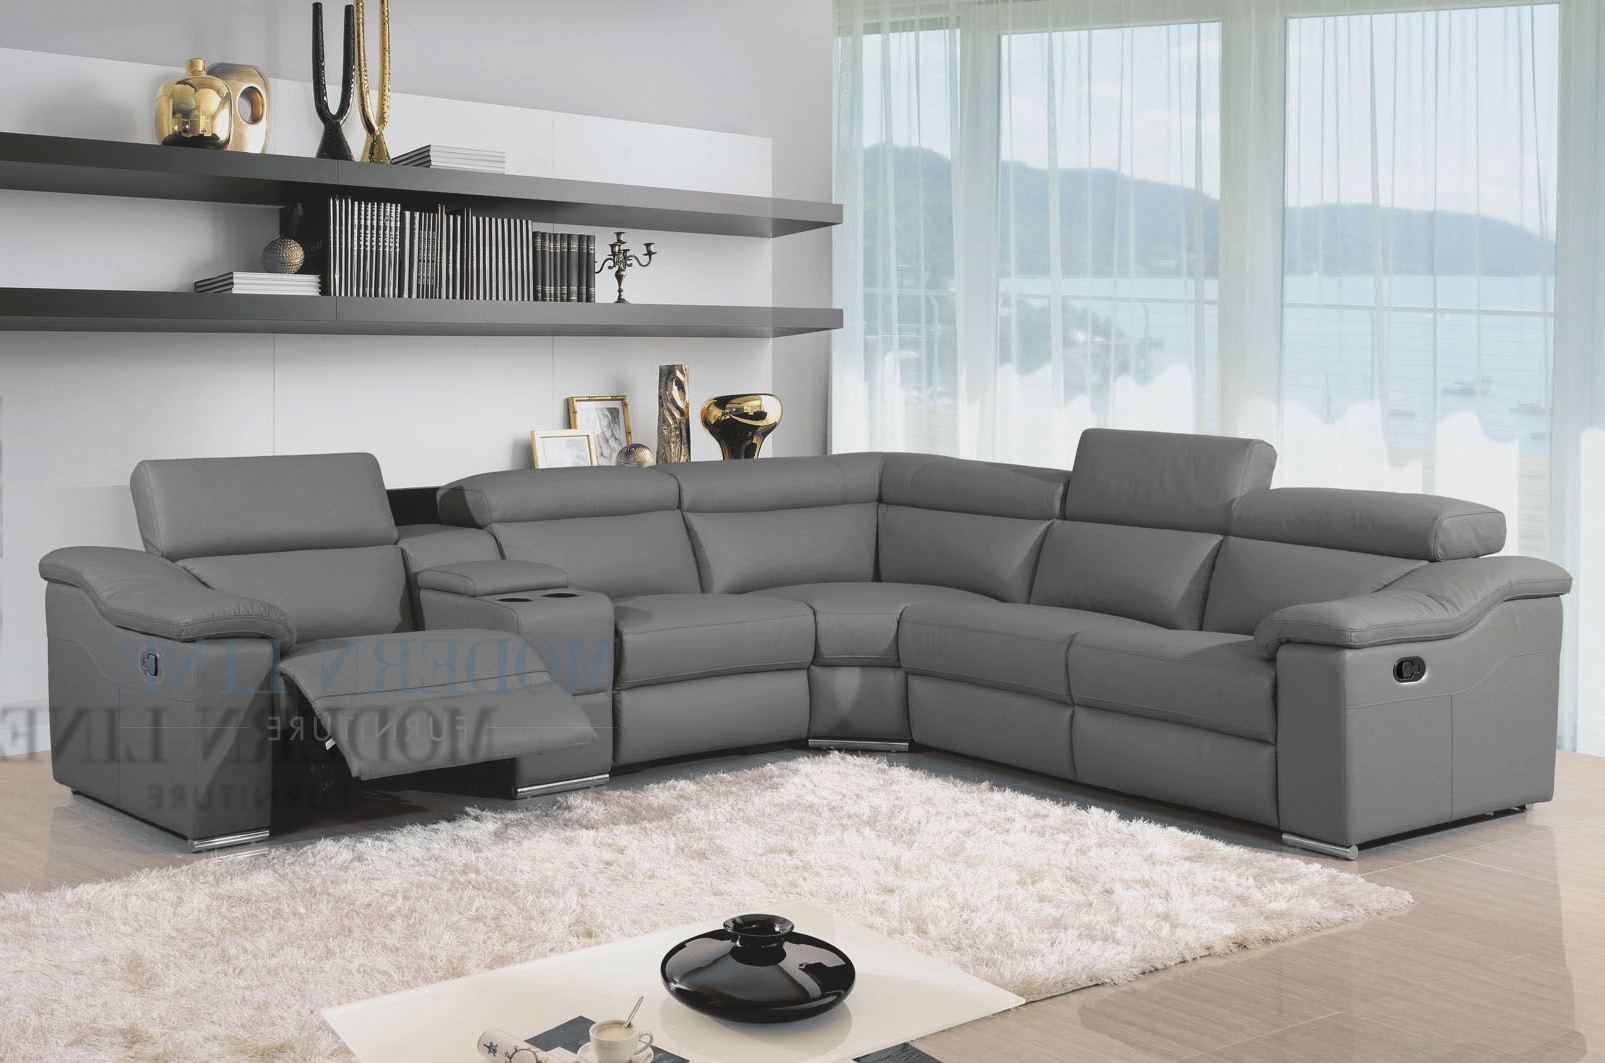 Preferred Sectional Sofas With Recliners Leather With Best Leather Sectional Sofa With Recliner 61 About Remodel Sofas (View 8 of 15)